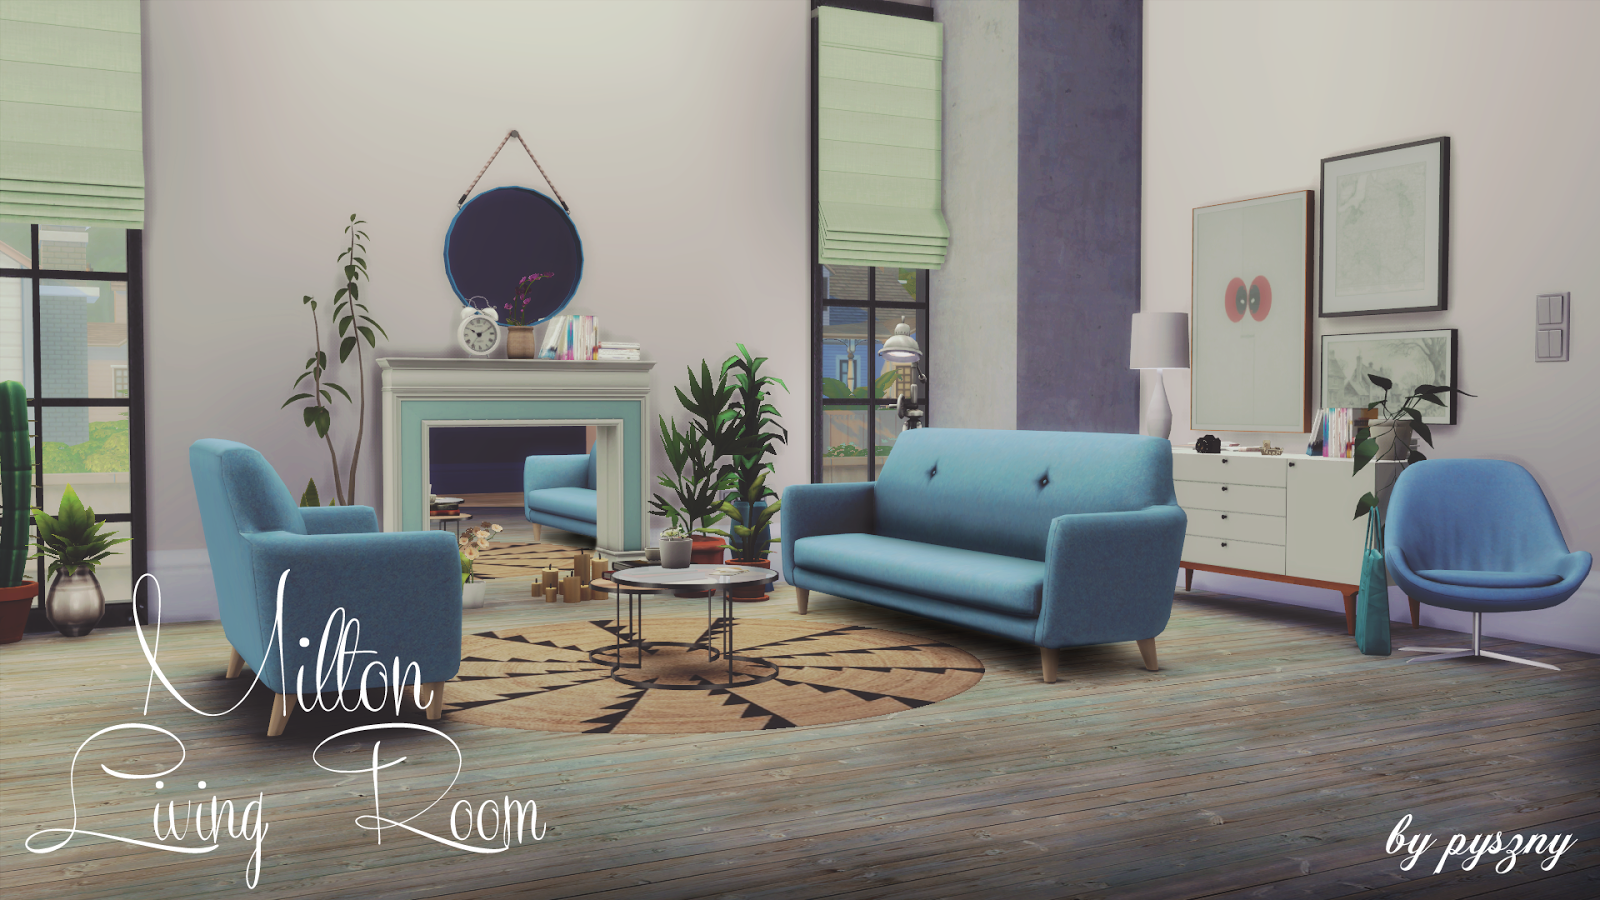 My sims 4 blog milton living room set by pyszny for Living room ideas sims 3